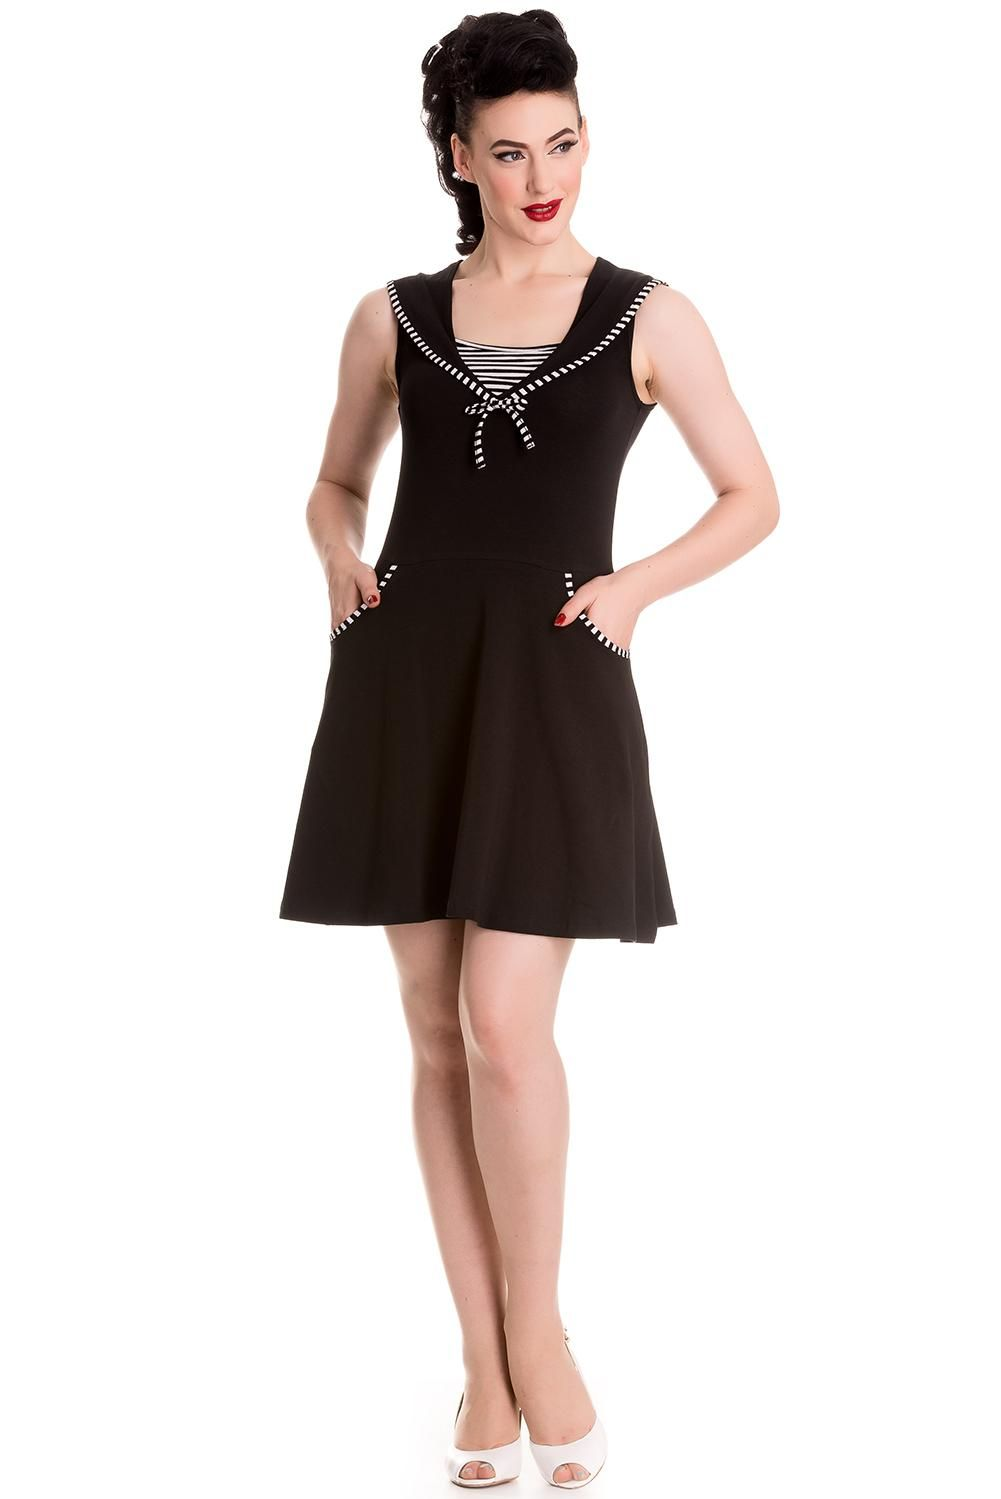 a2ee4928e255e Hell Bunny Hali Dress Black Now £15.95 sizes 8-16 wigig